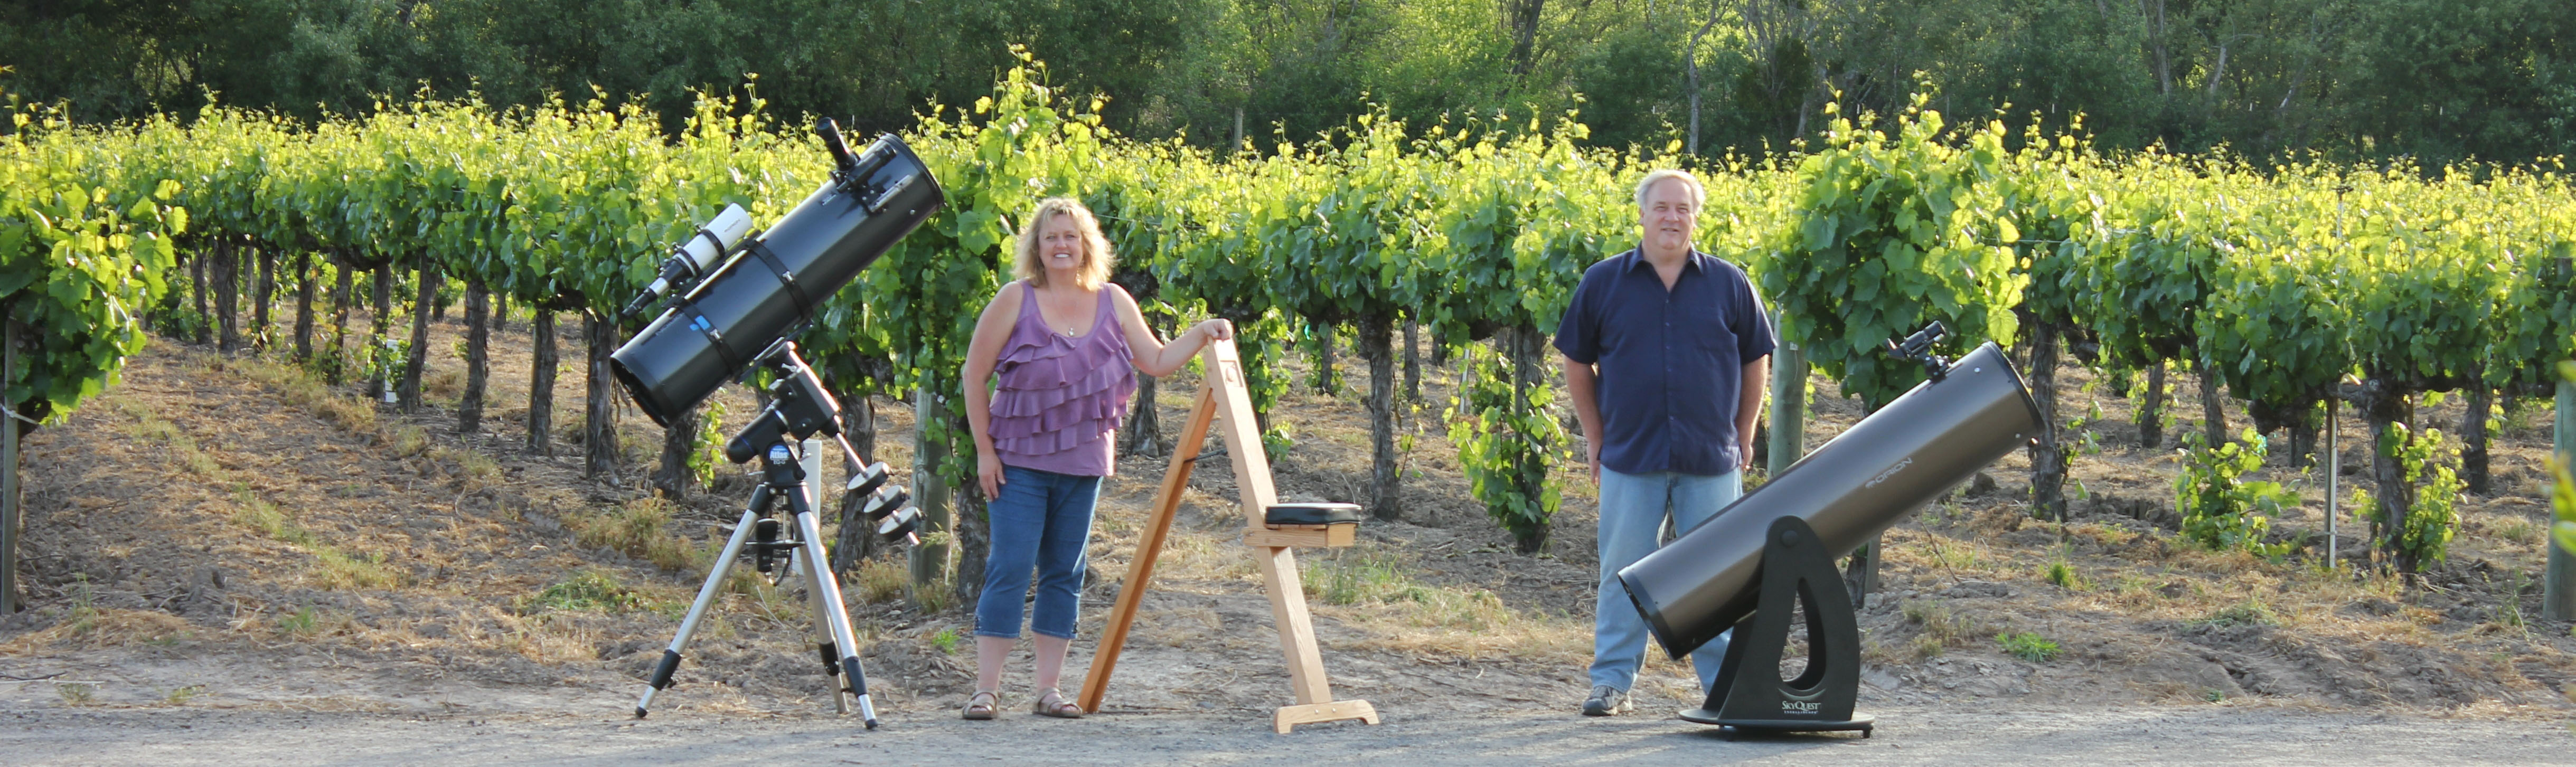 Wine Country Star Party - things to do Napa Sonoma